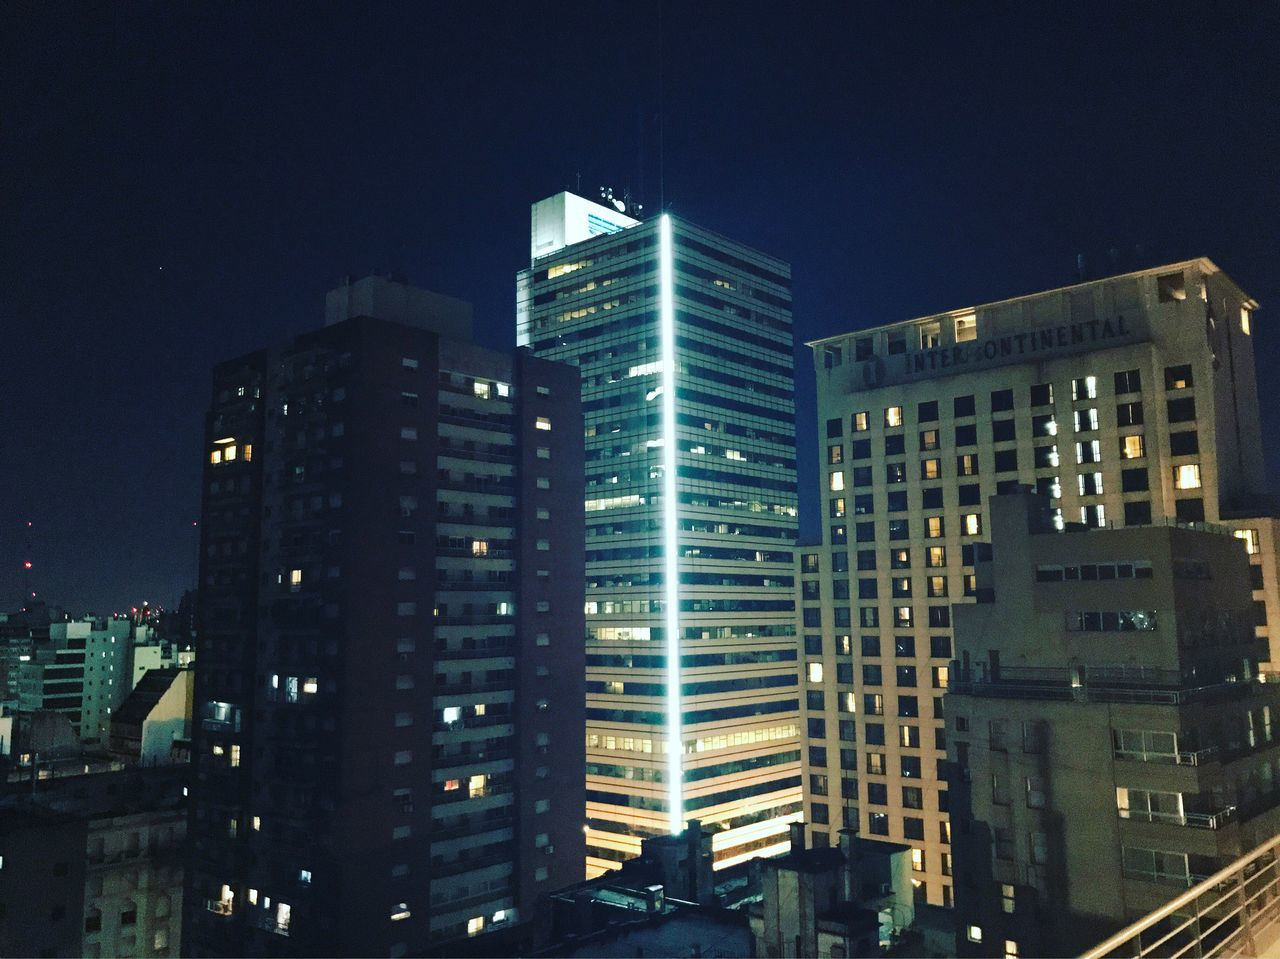 architecture, night, building exterior, illuminated, modern, city, skyscraper, built structure, no people, cityscape, outdoors